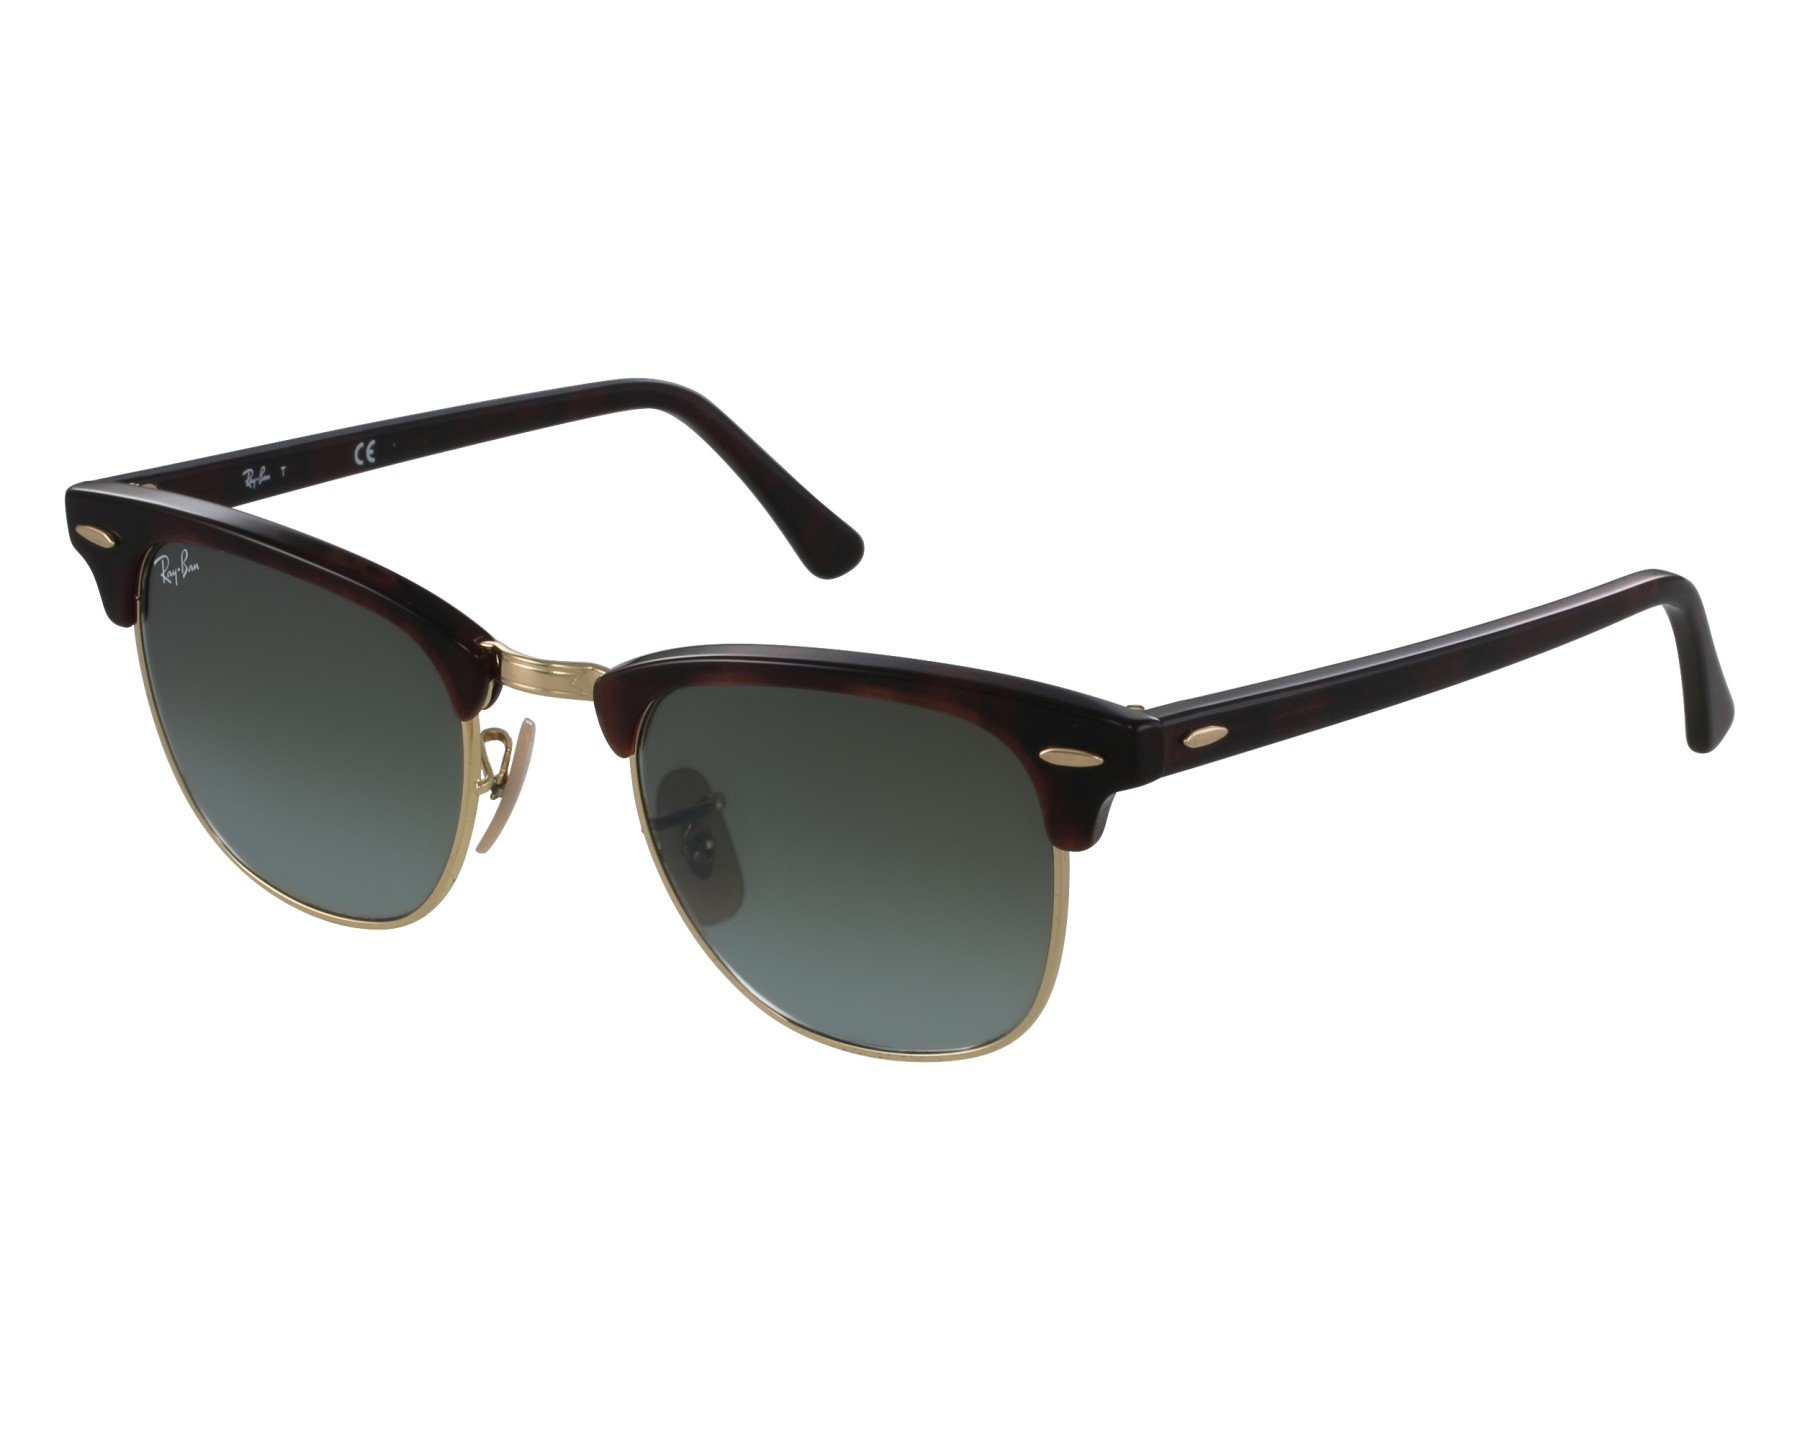 Sunglasses Ray-Ban RB-3016 990 9J 49-21 Havana Gold front 111388f207